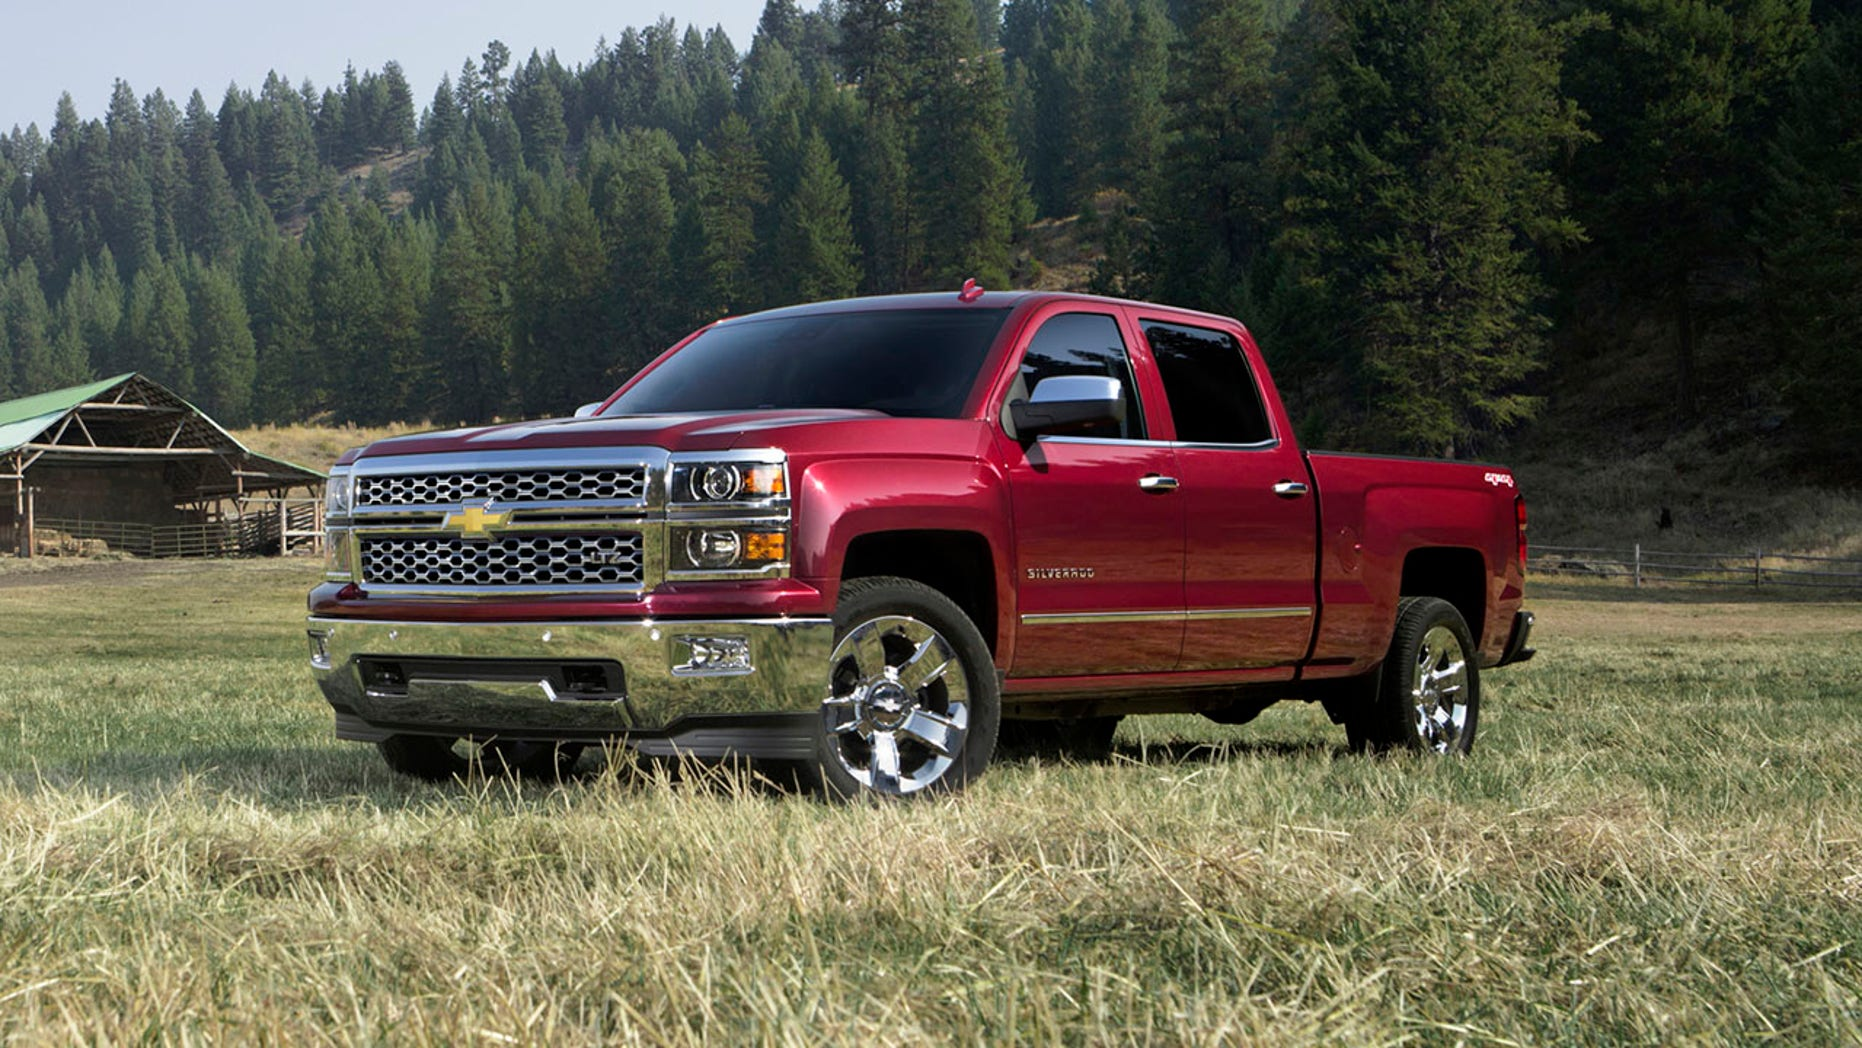 The Chevrolet Silverado is among the recalled trucks.